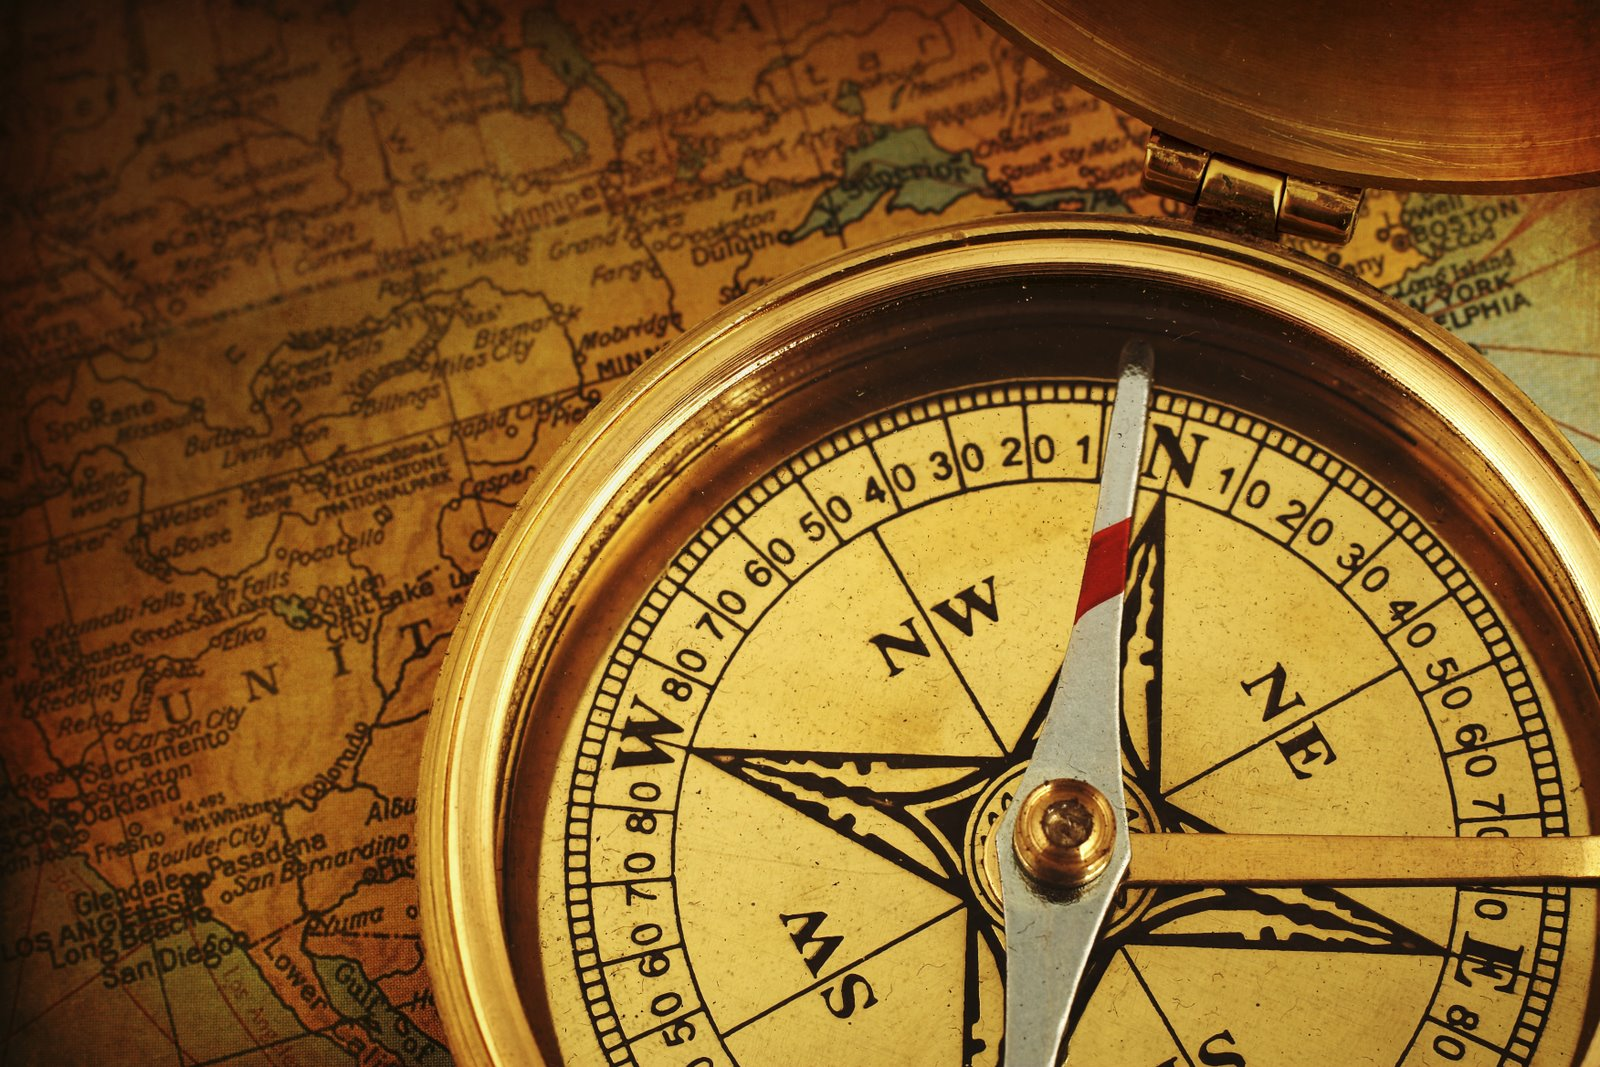 Learn to Point North and to read a compass